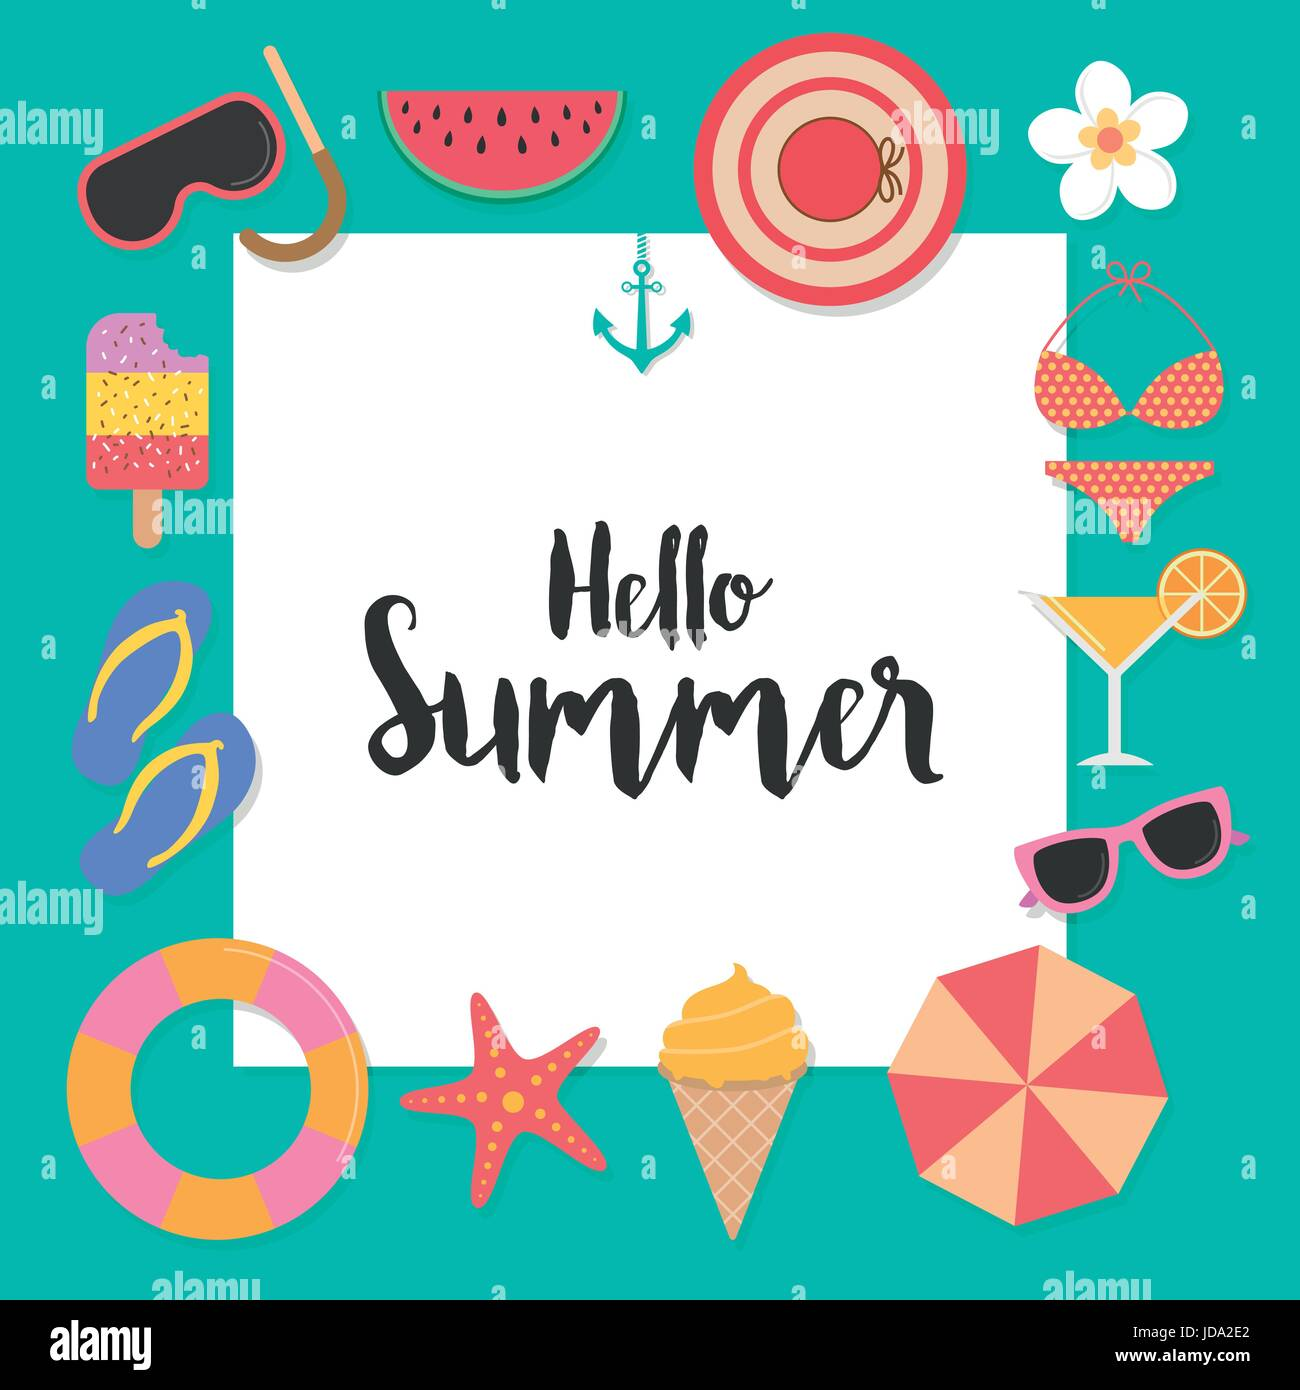 Hello Summer Background With Elements For Greeting Card, Poster, Banner,  Invitation Card, Backdrop And Template Design. Season Vacation, Weekend.  Vect